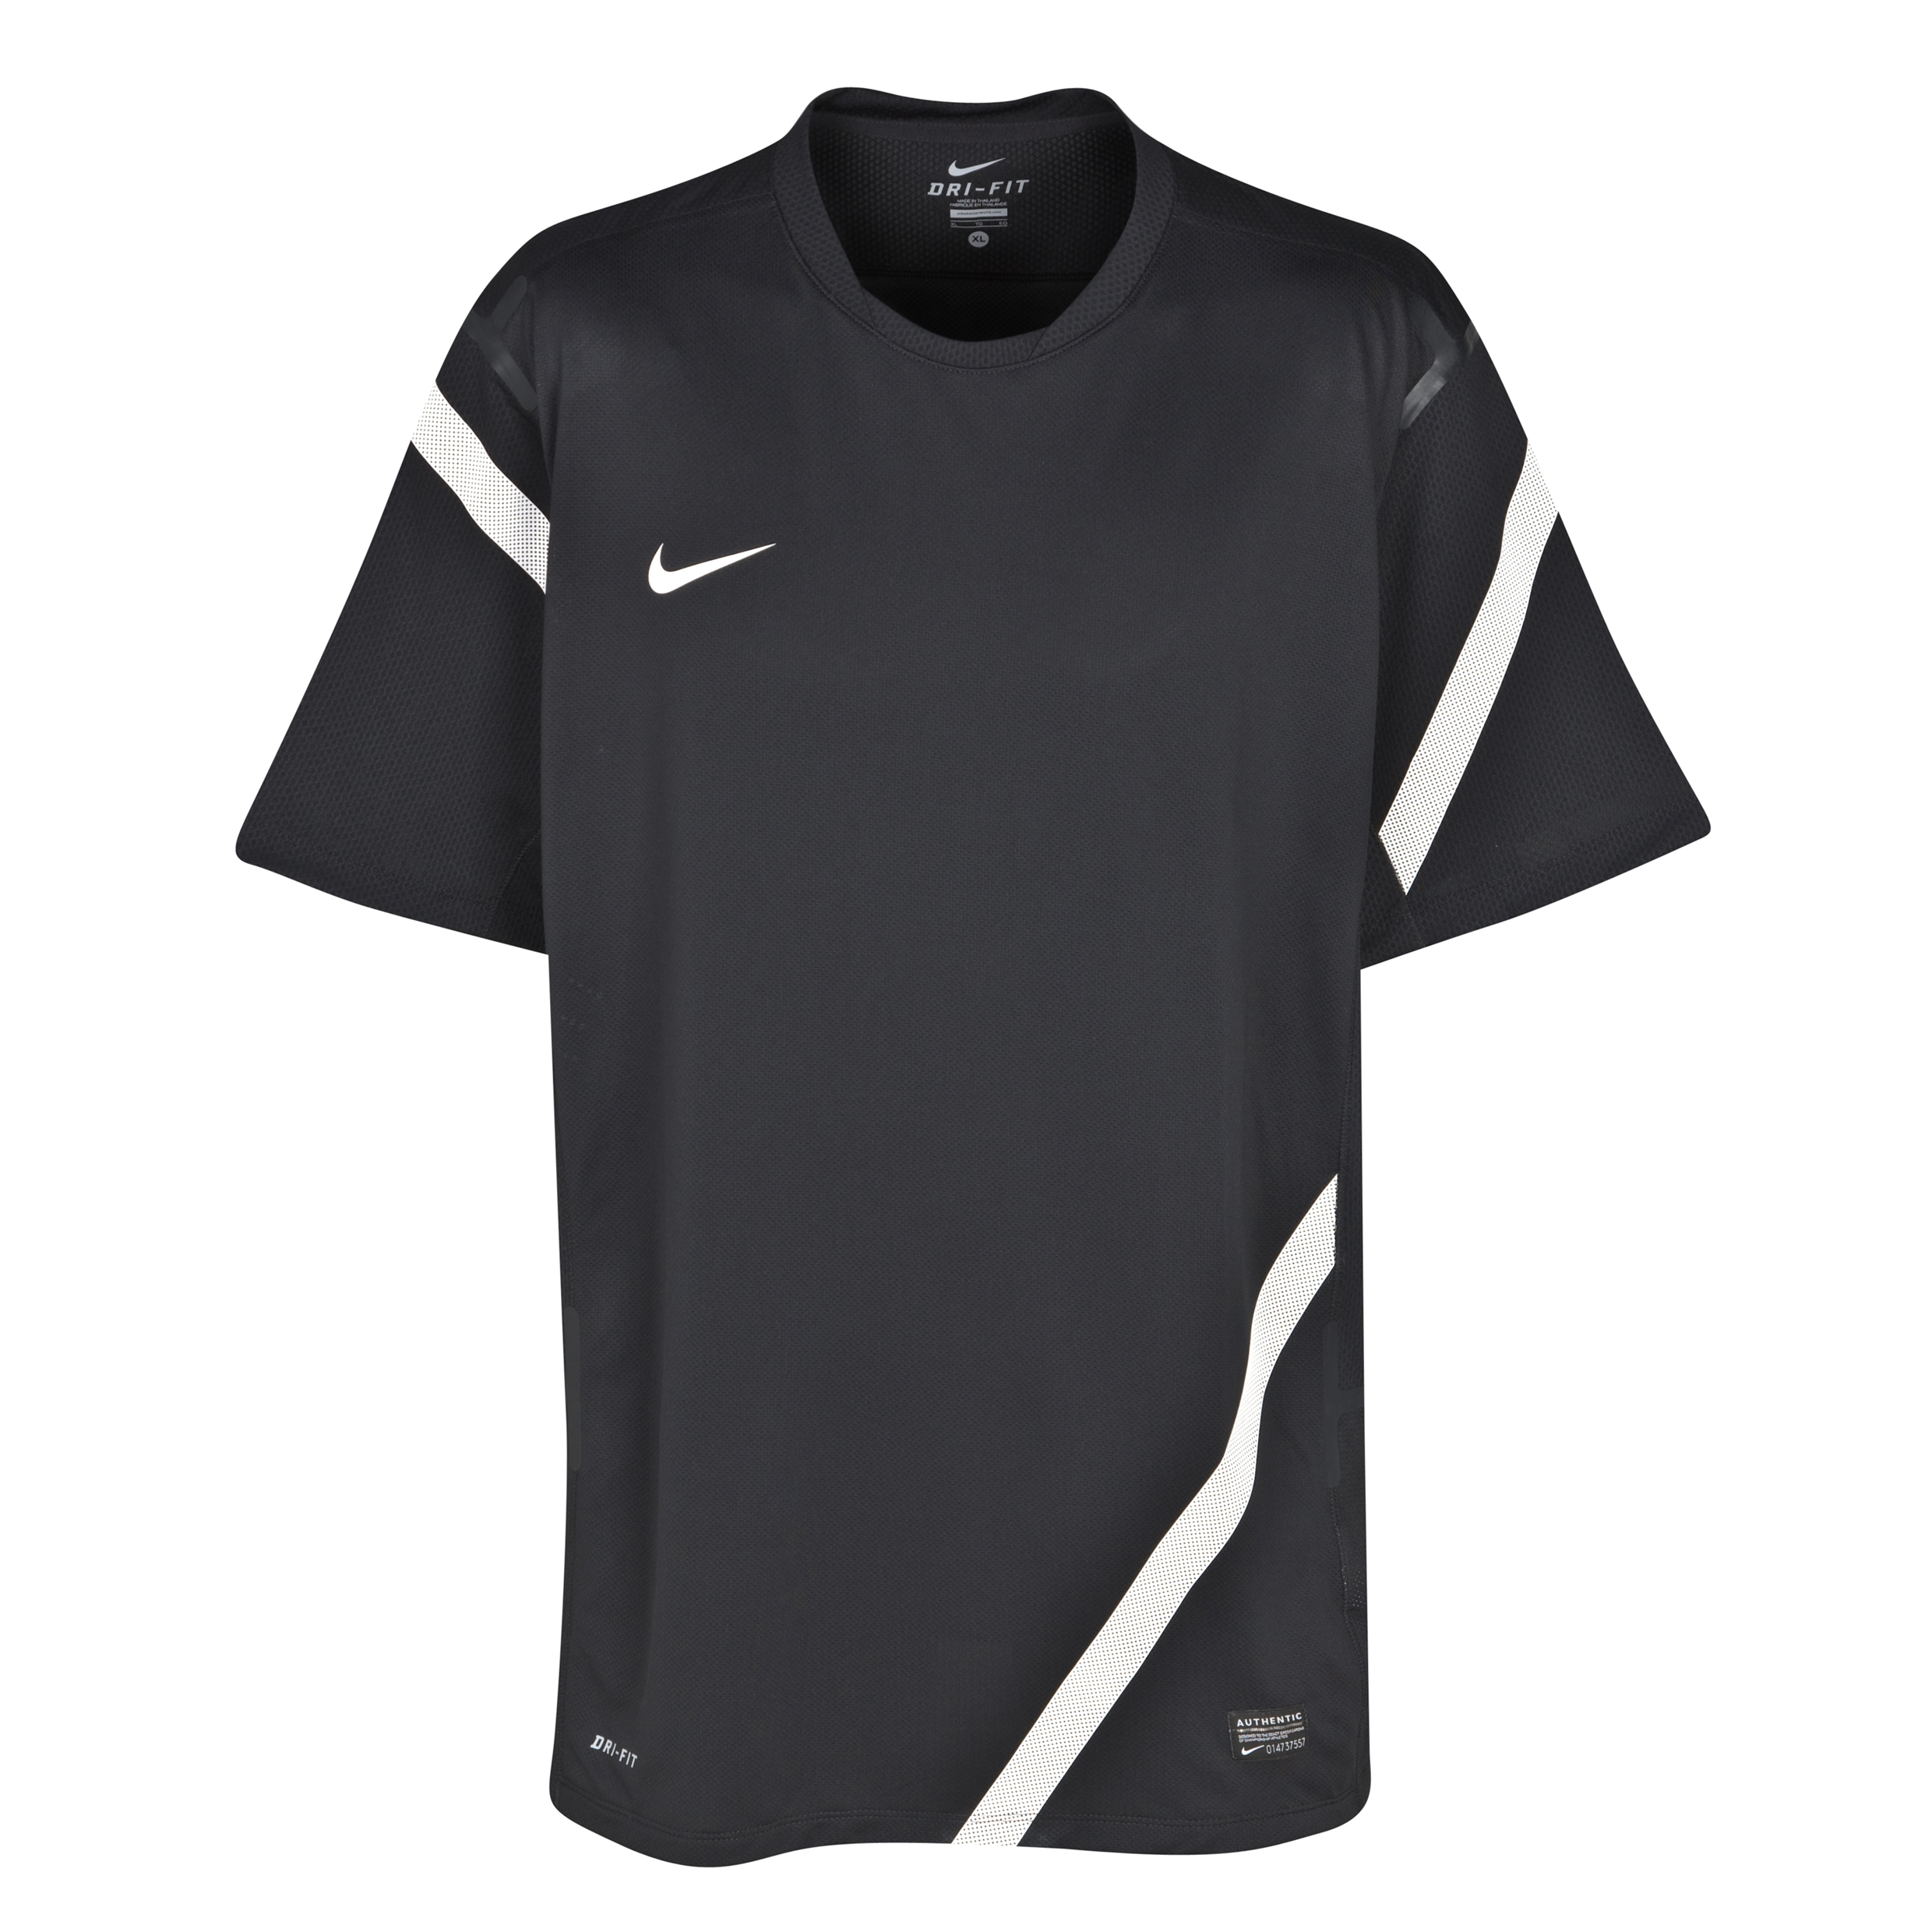 Nike Elite Training Top - Black/White